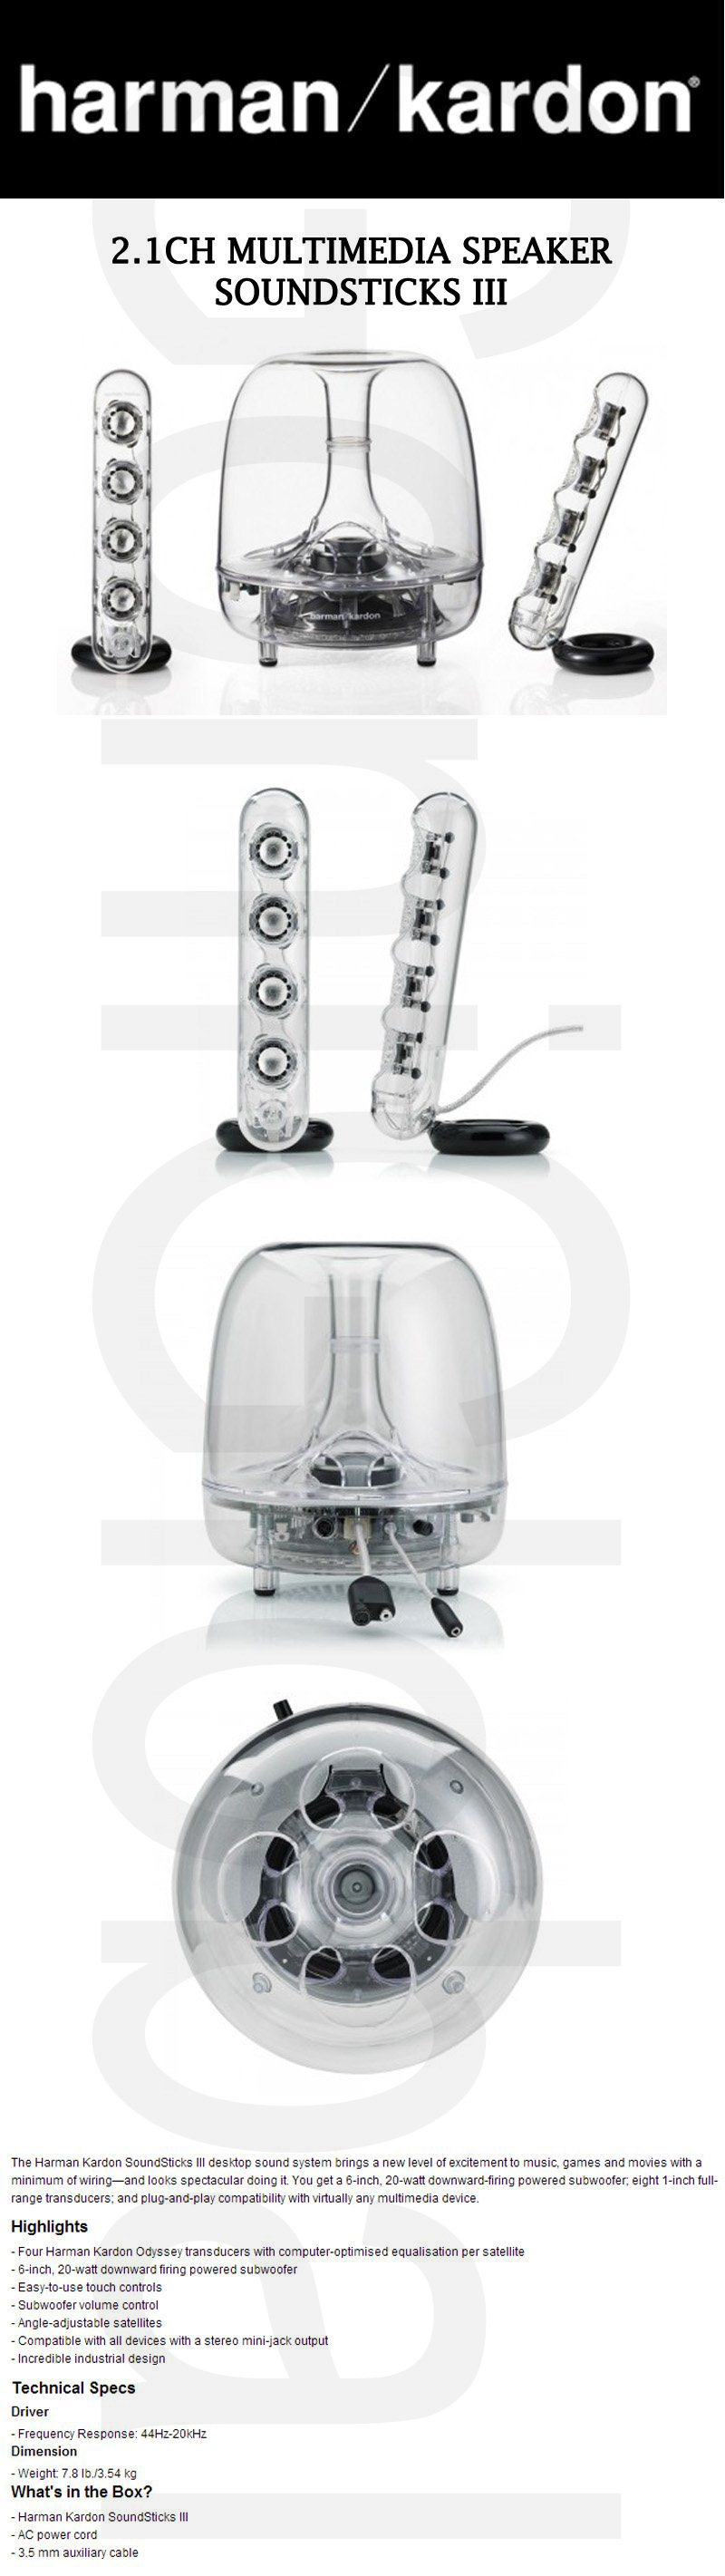 harman kardon 2 1ch multimedia speaker soundsticks iii ebay rh ebay com sg harman kardon soundsticks iii review harman kardon soundsticks iii review